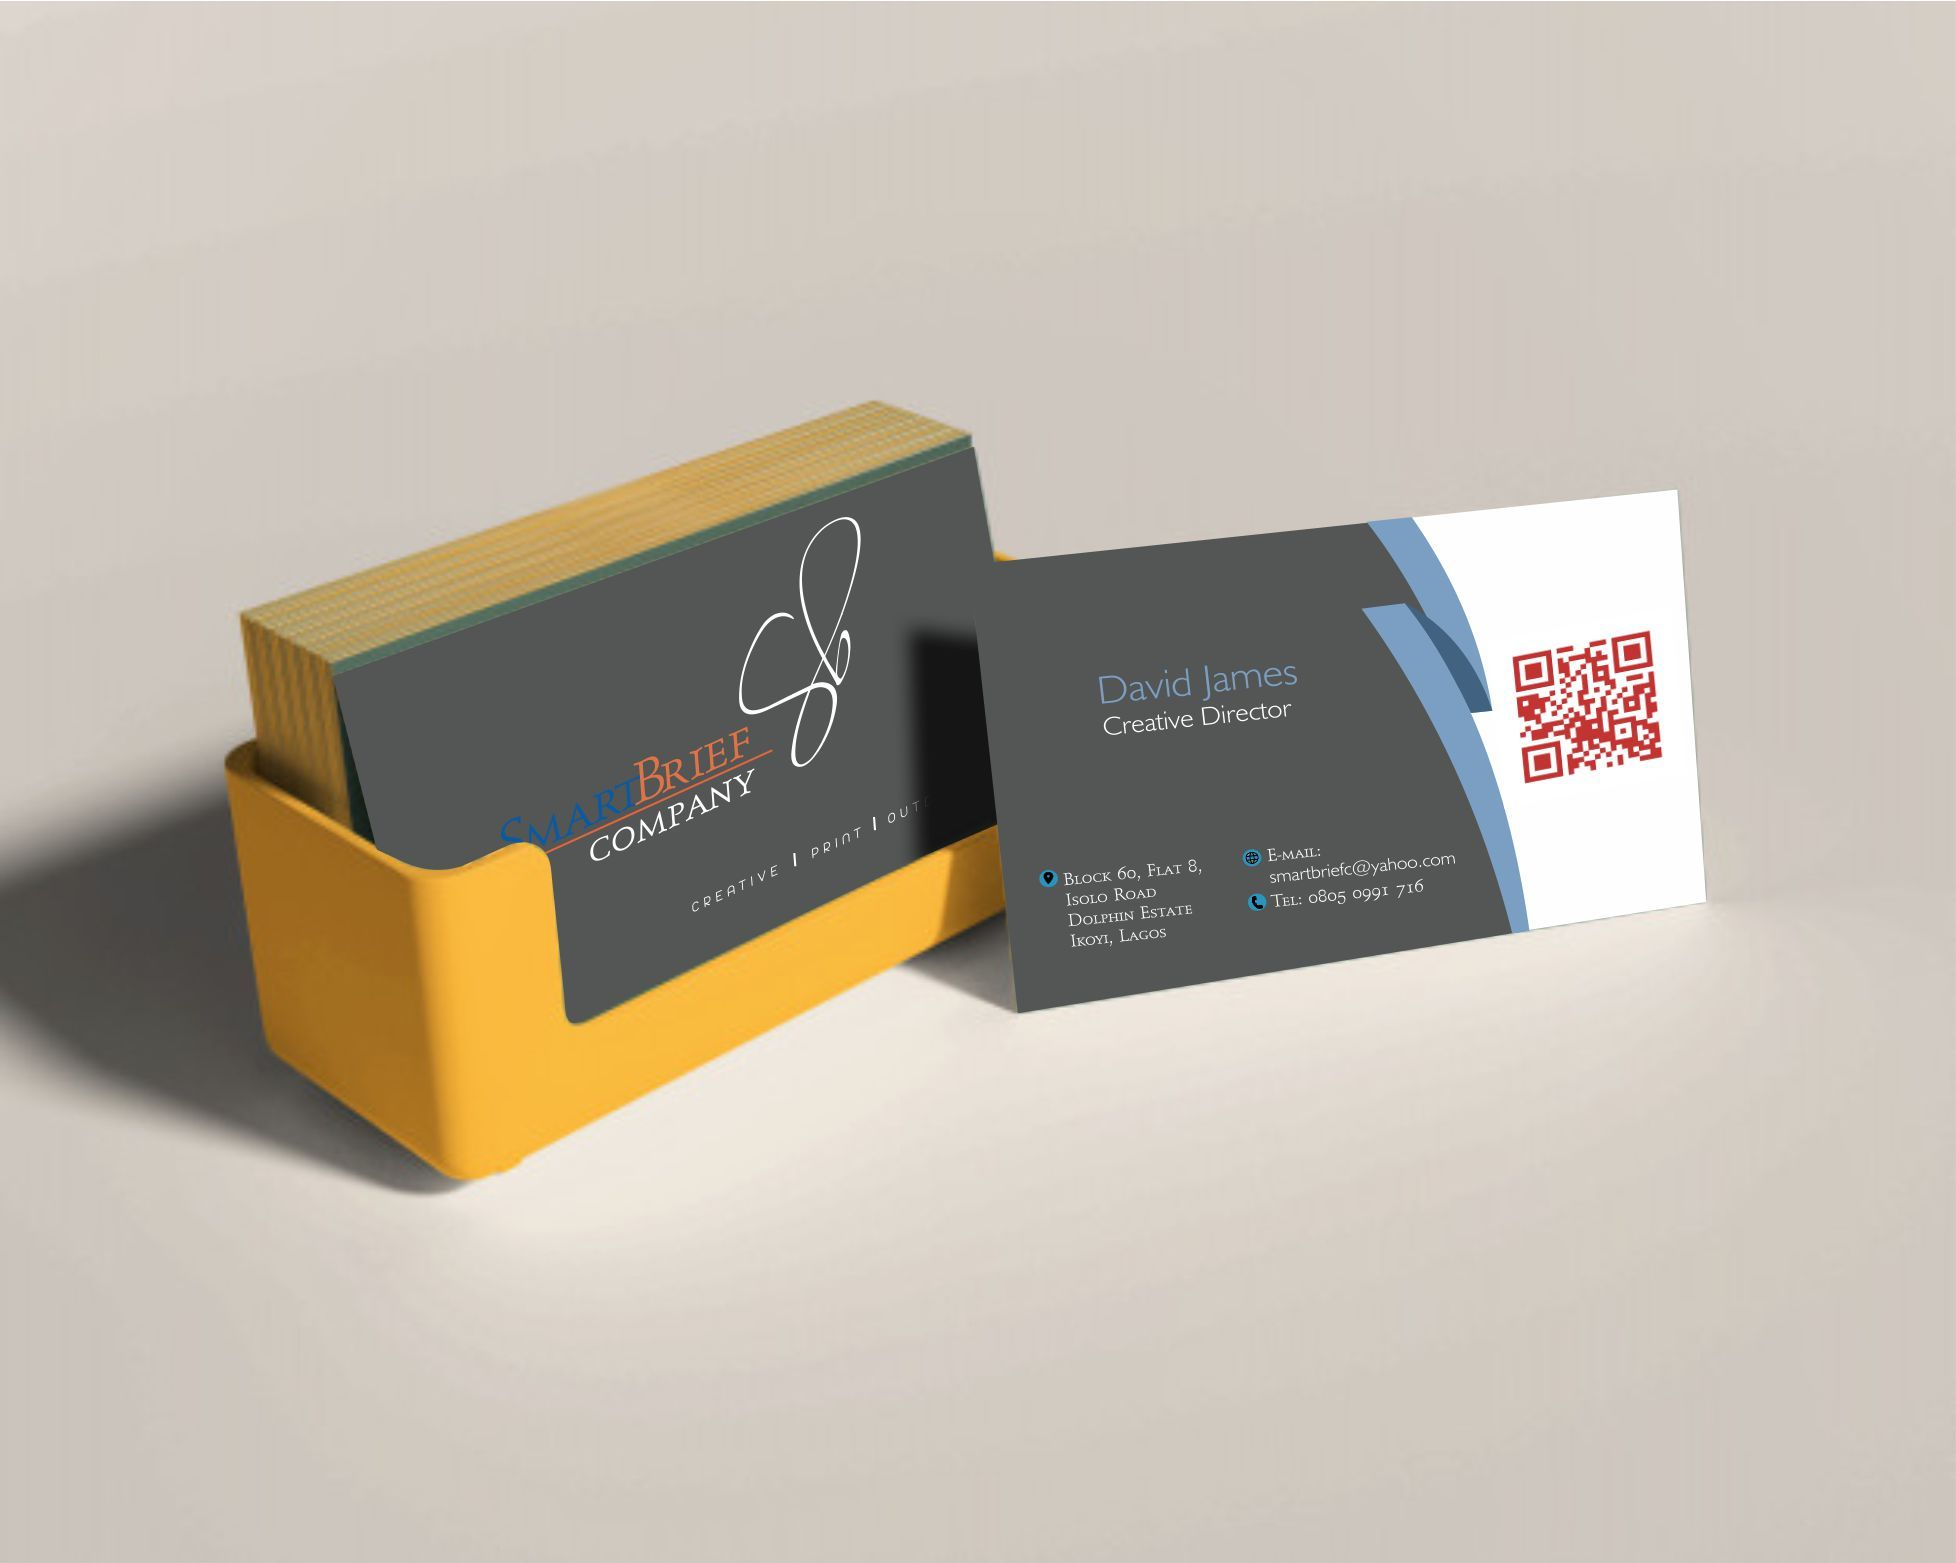 Business Cards Business Card Set High Quality Business Cards Company Business Cards